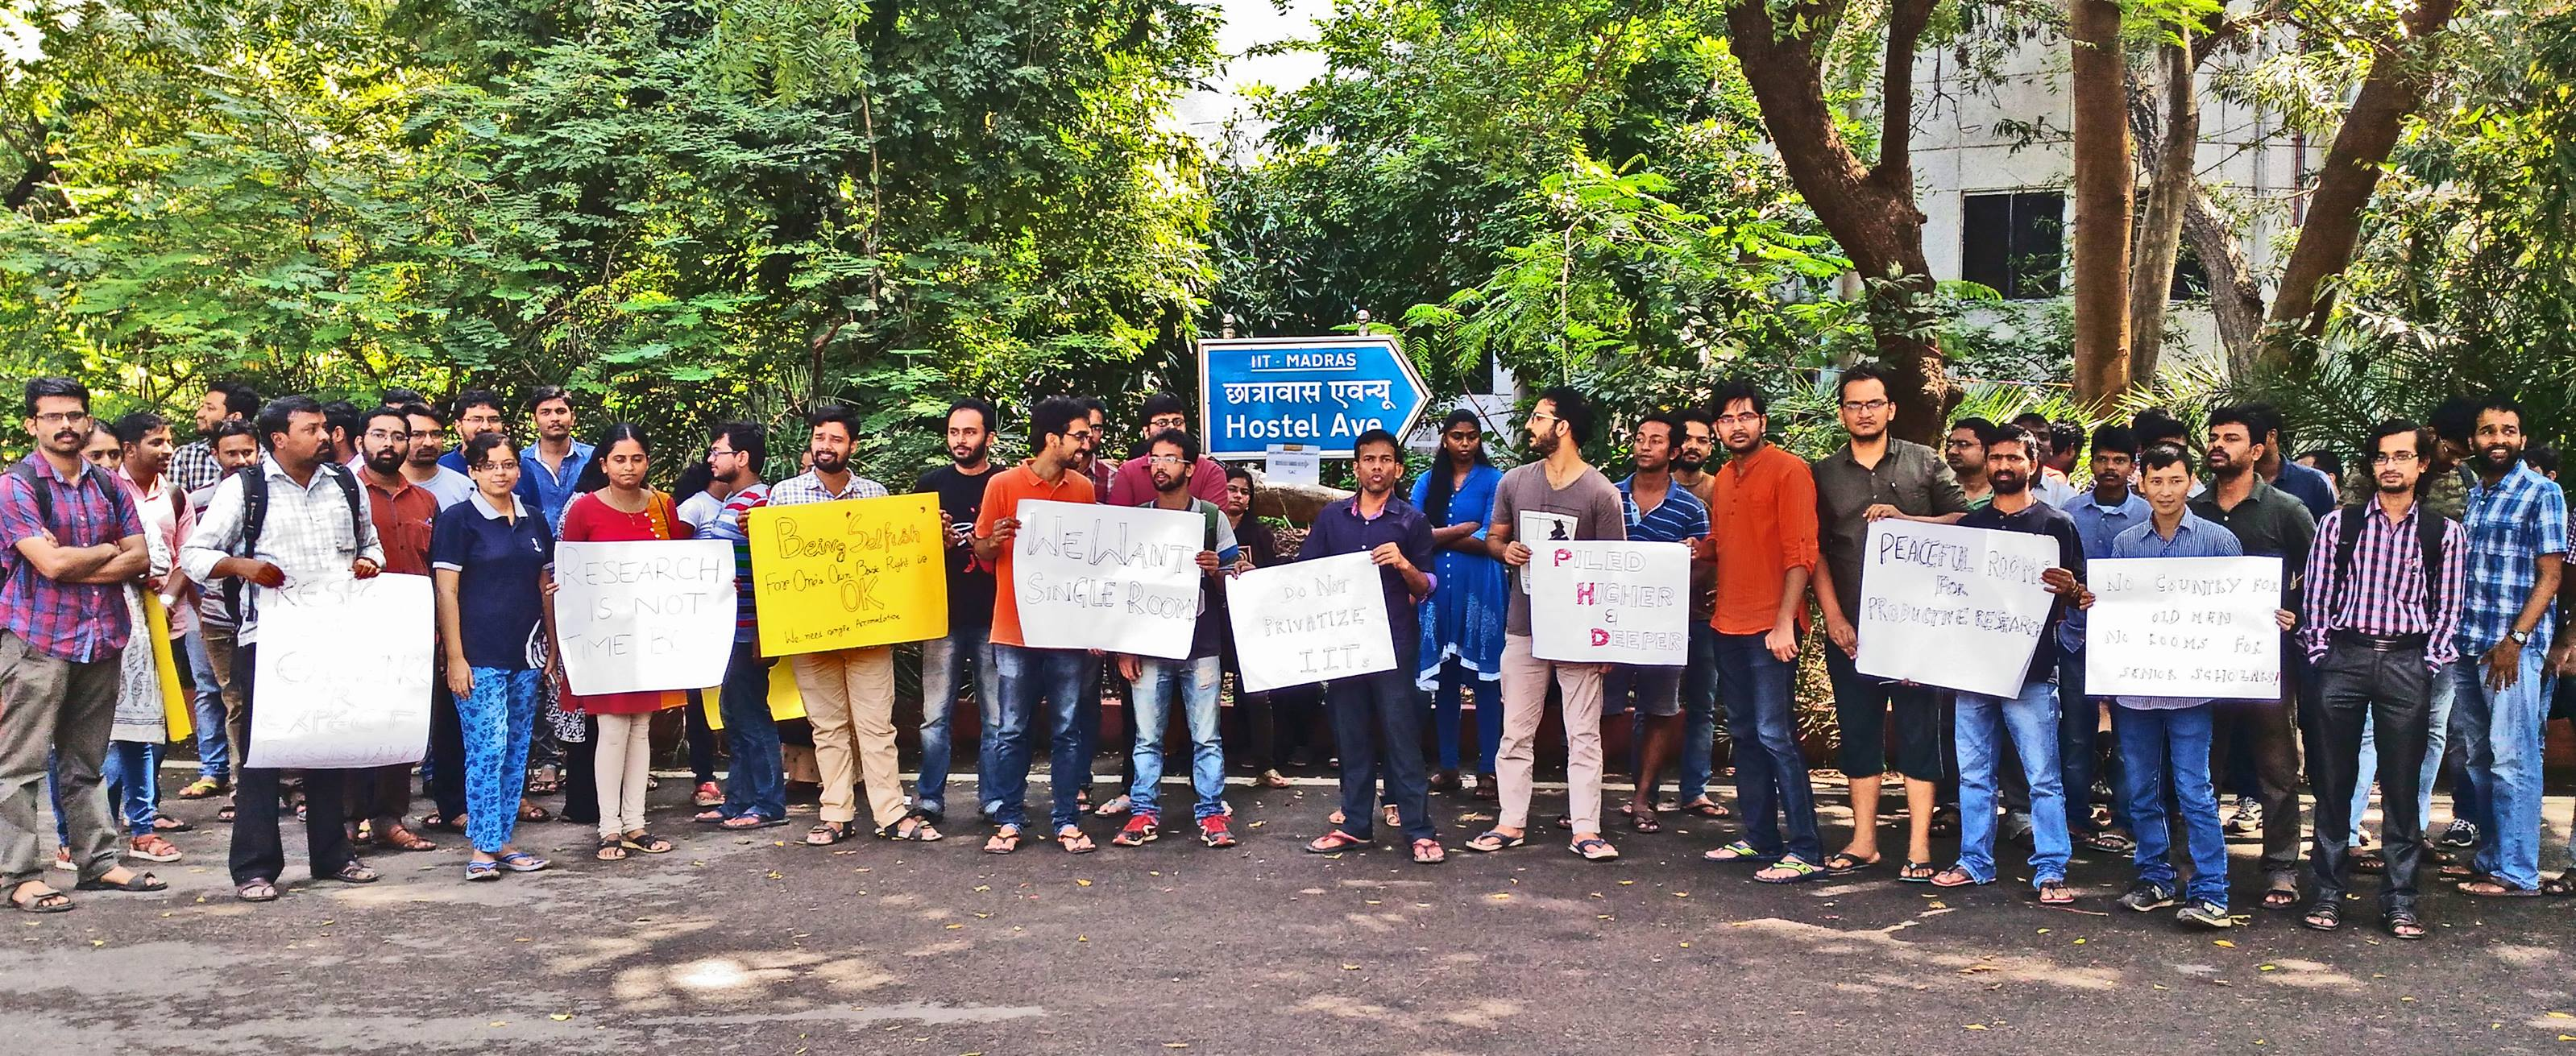 Accommodation Crisis in Insti: Research Scholars Protest